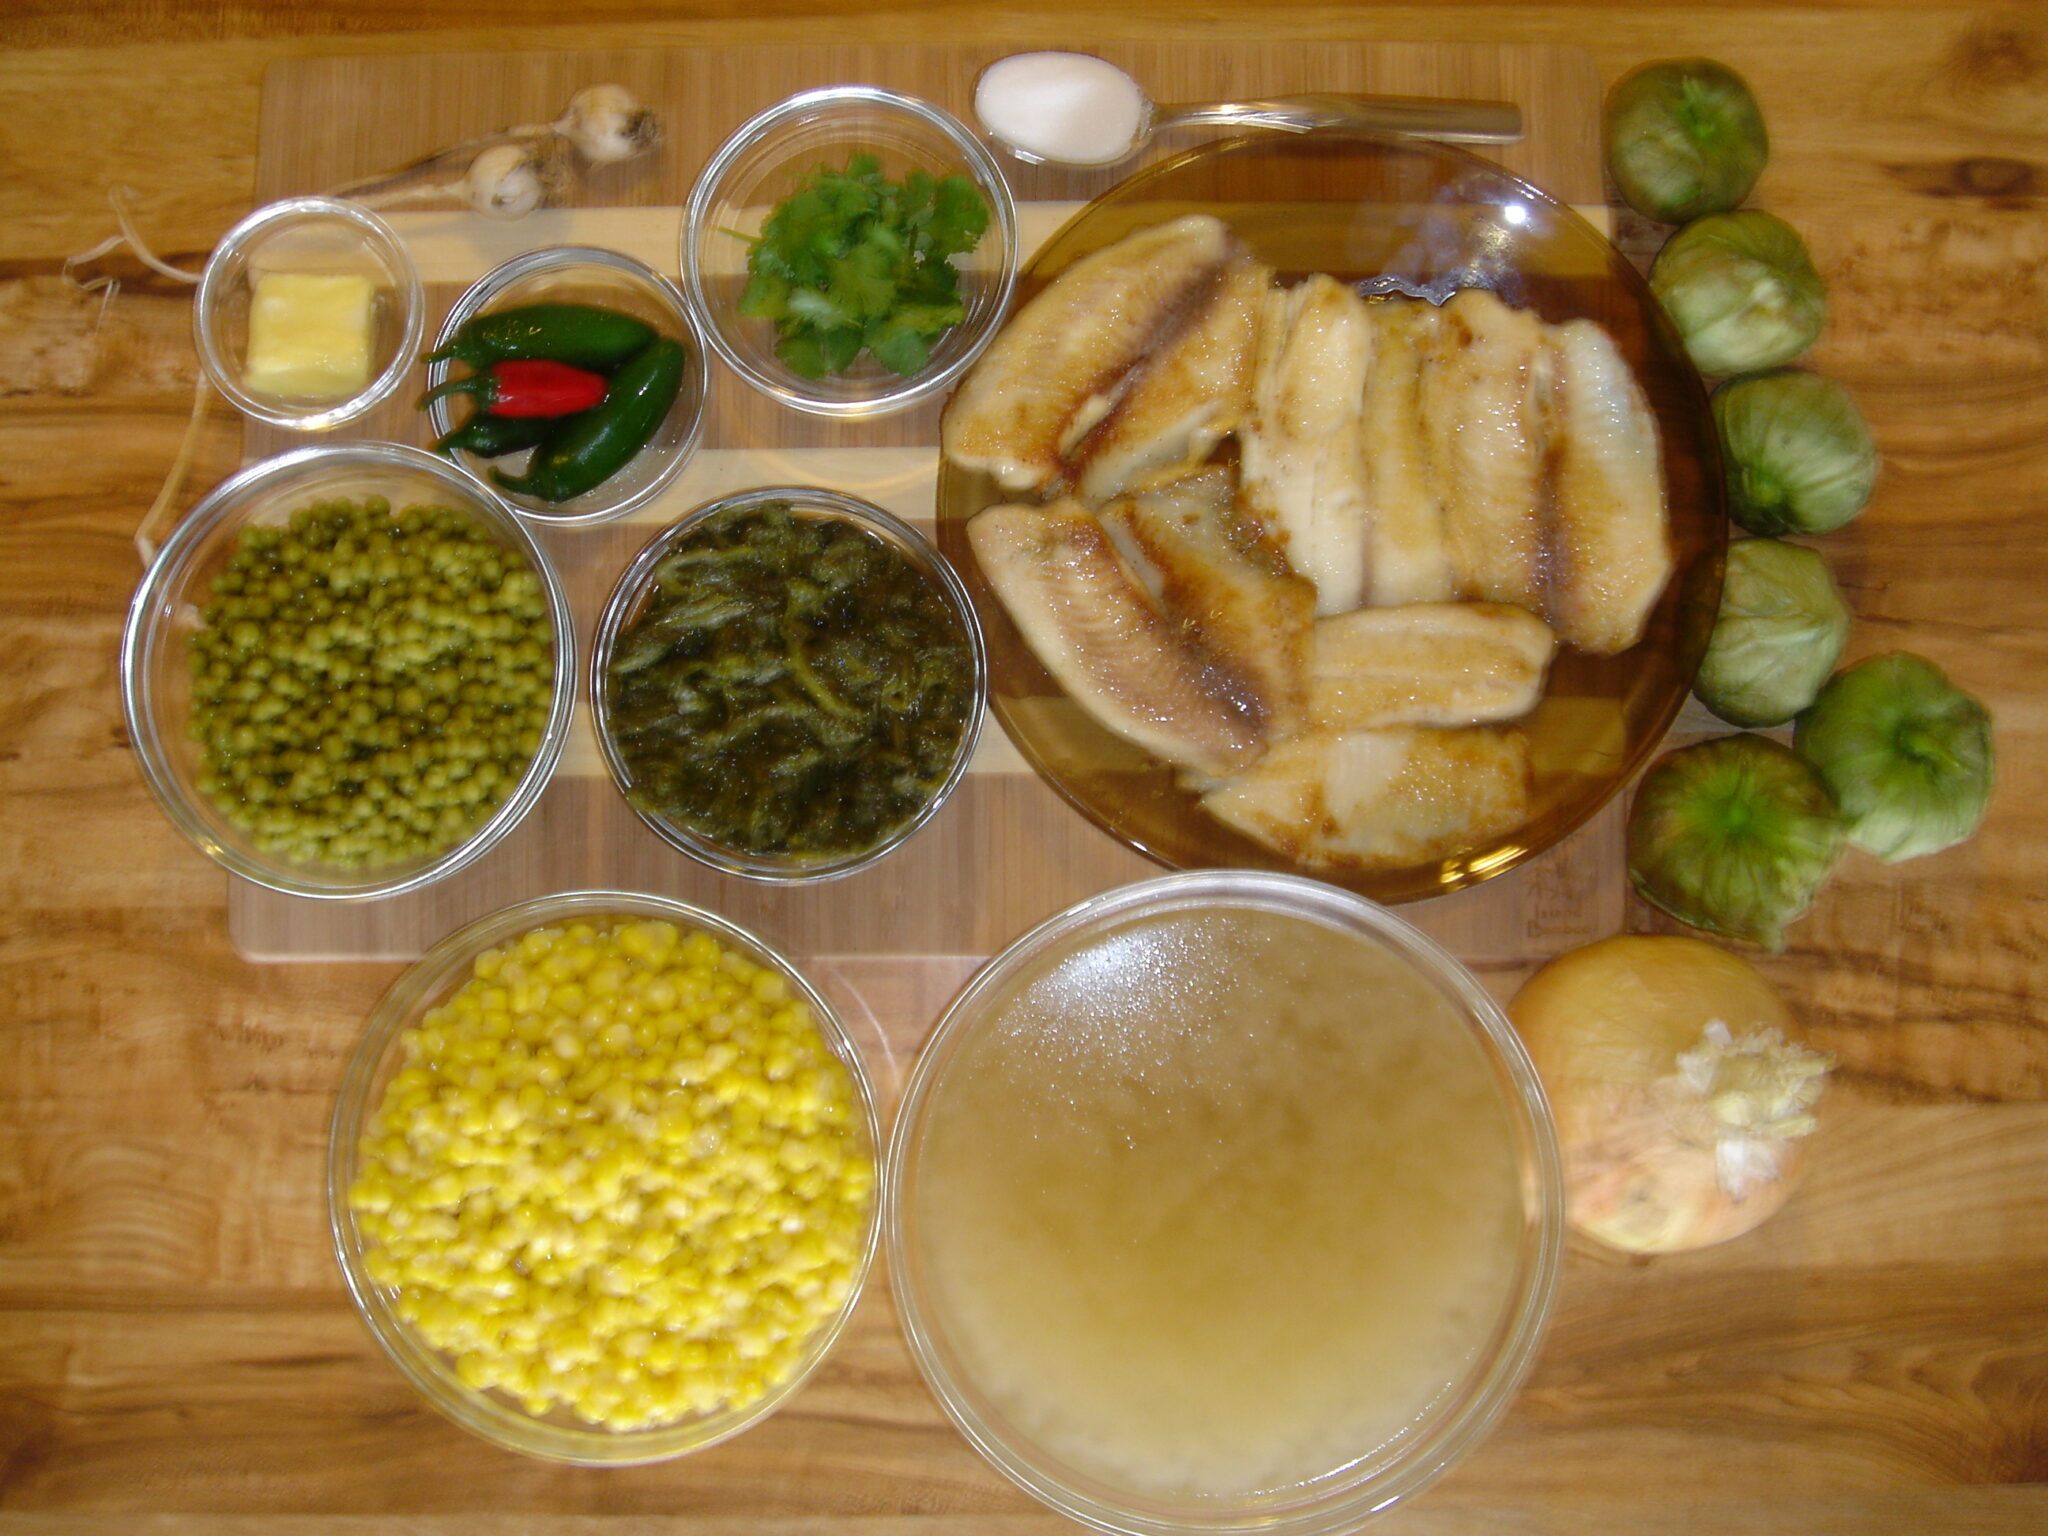 Tomatillo and Tilapia Soup - Ingredients